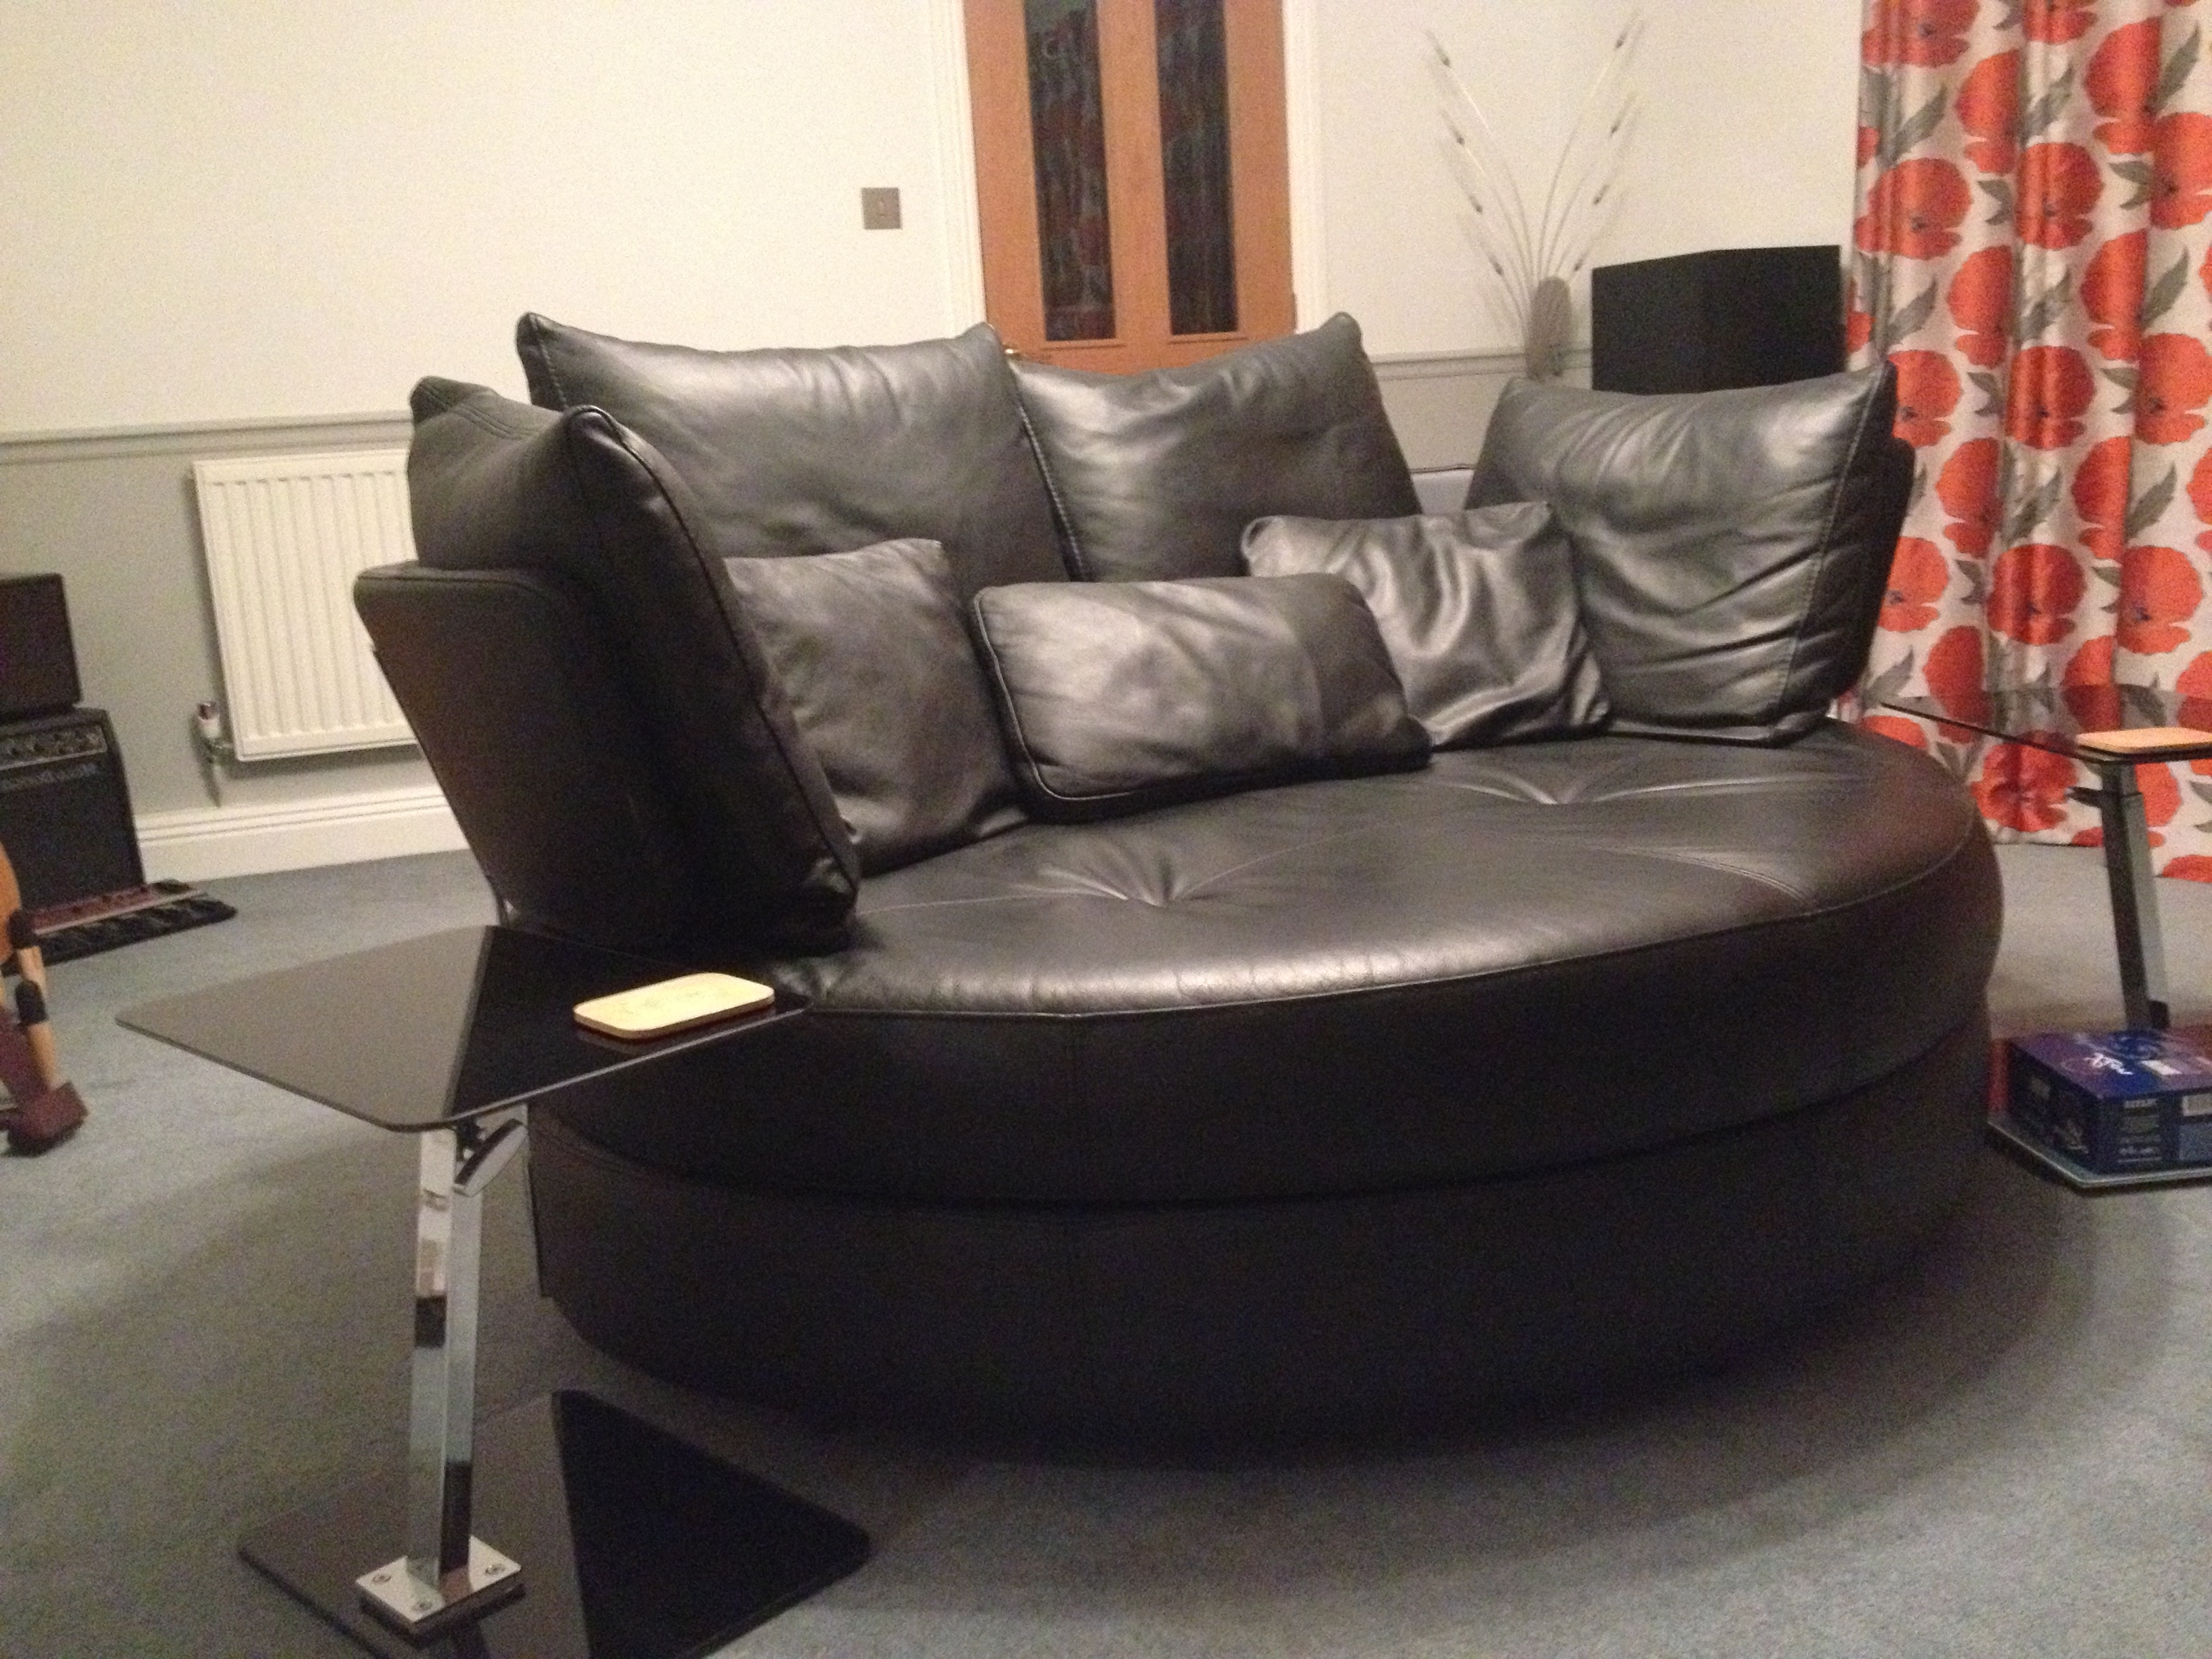 Recent Sofas With Swivel Chair Intended For Fabulous Leather 2 Person Large Swivel Snuggler Chair/sofa (View 11 of 15)